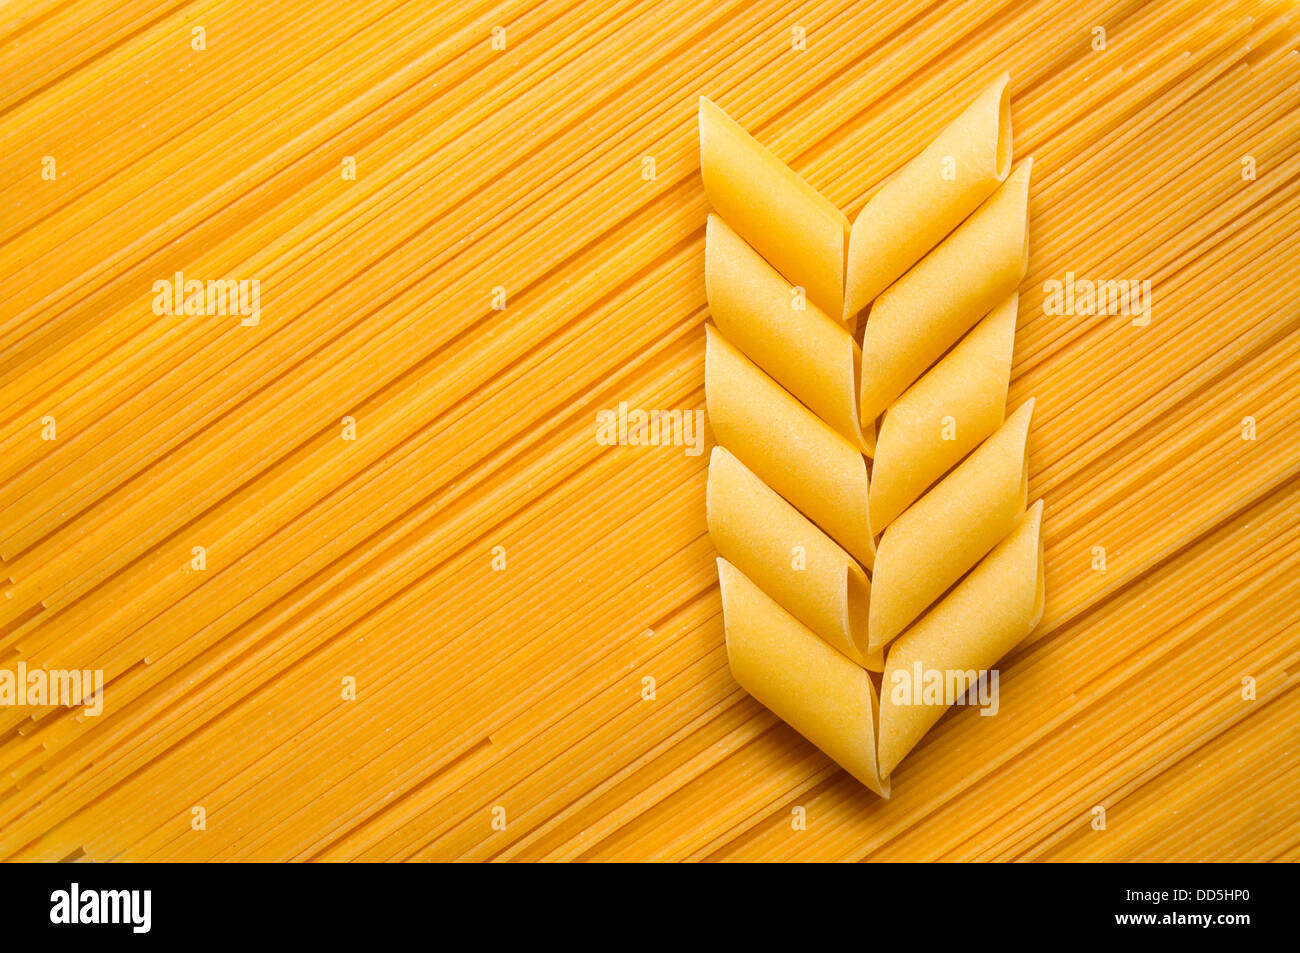 Pasta composition. Ear made of macaroni on spaghetti background. - Stock Image